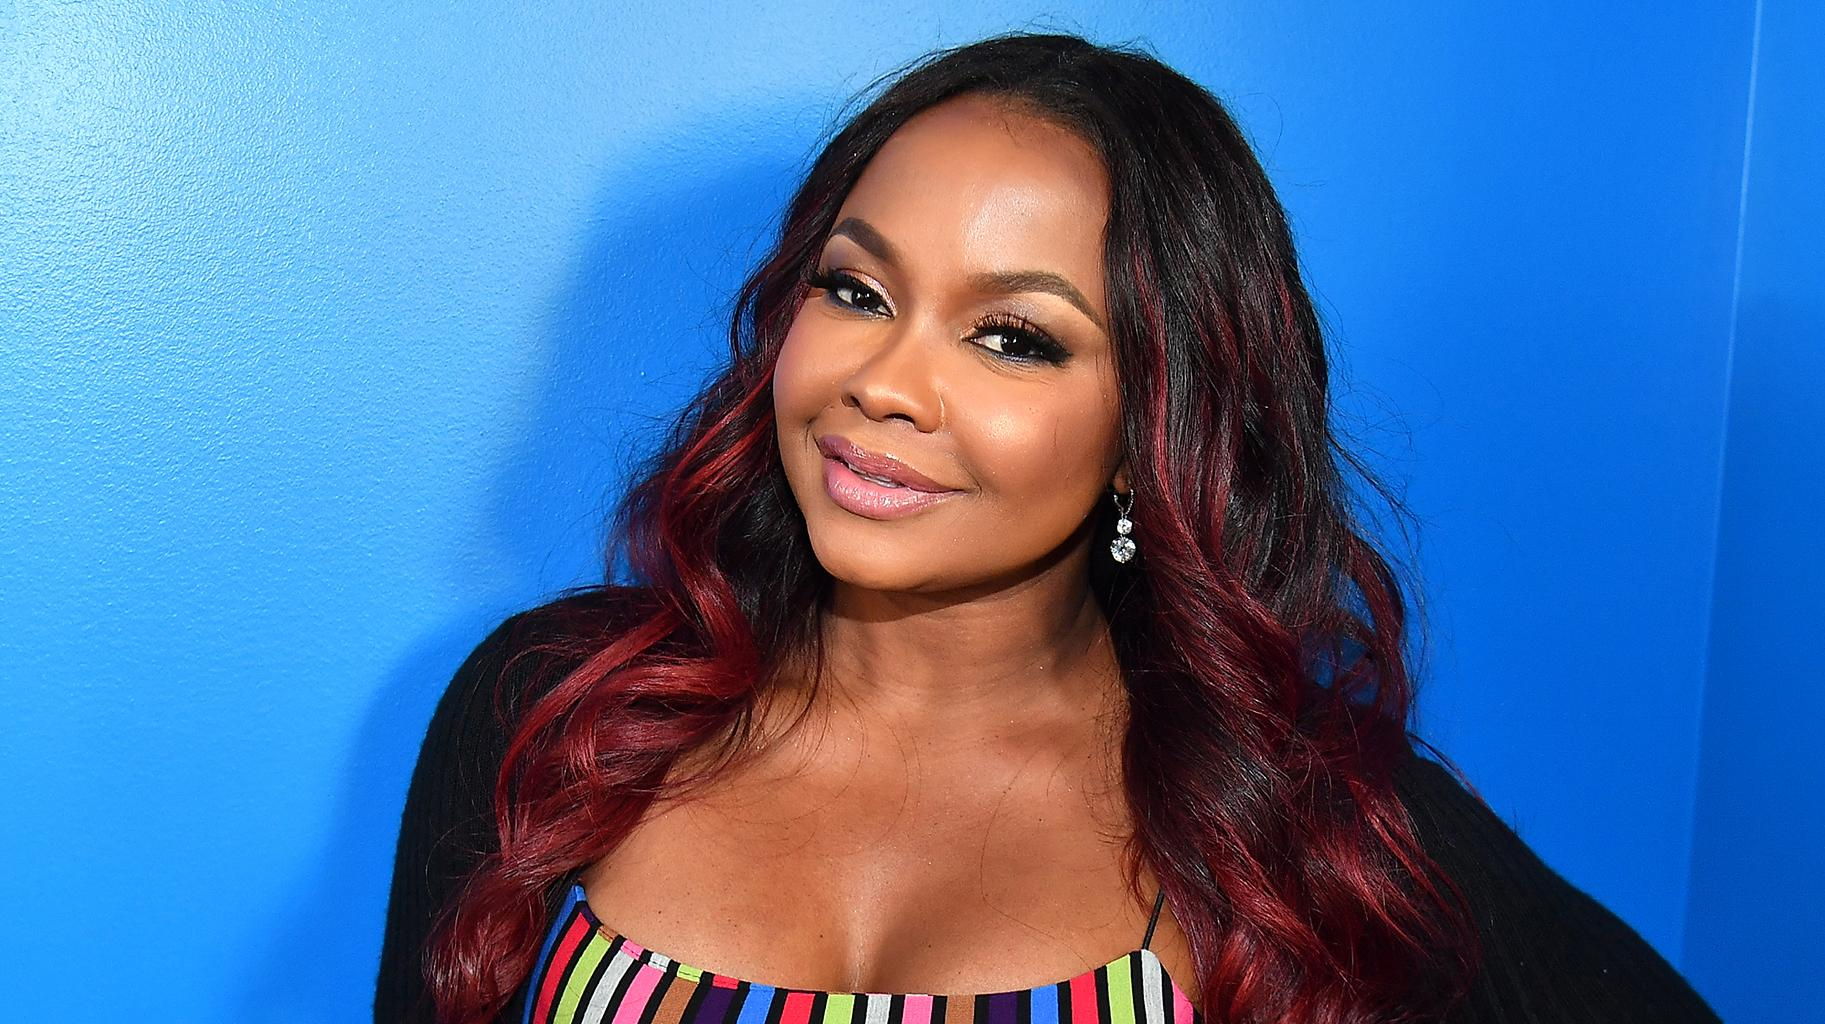 Phaedra Parks Talks About Empowering Others And Creating Opportunities